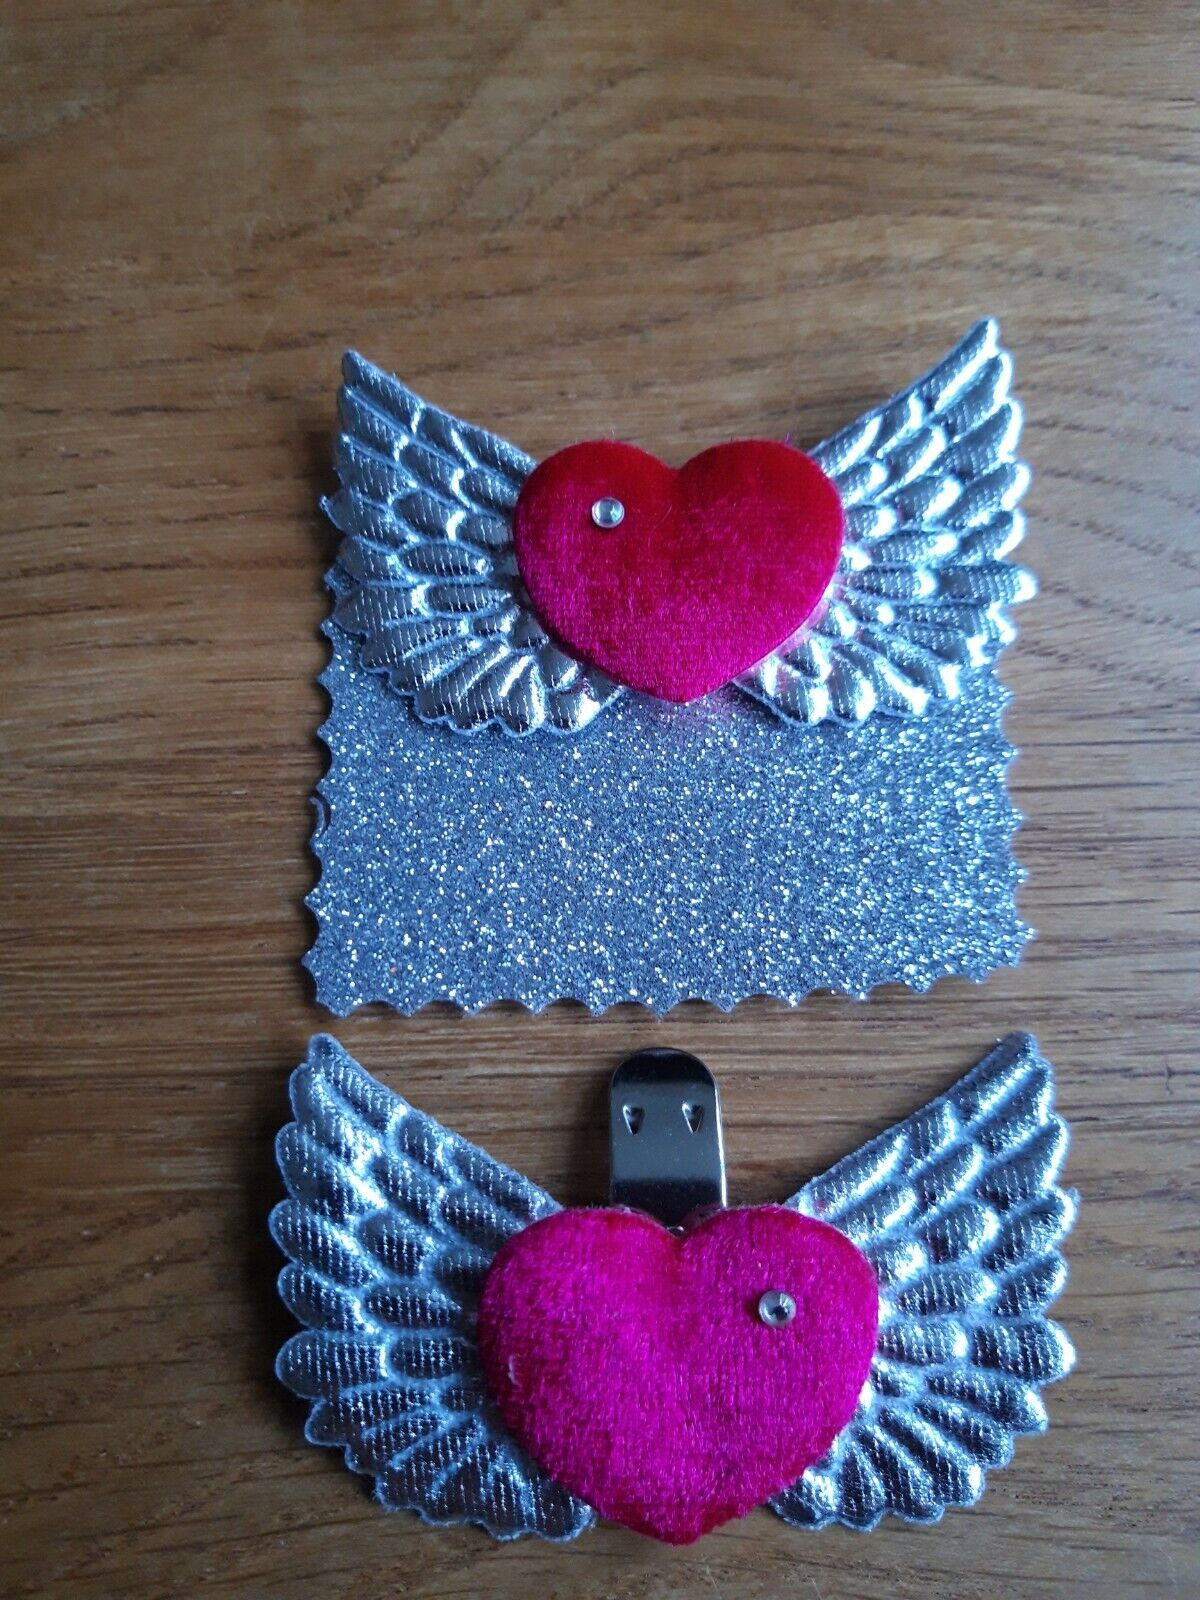 Hot Pink Velvet Hearts and Silver Wings Shoe Clips - Rock 'n' Roll Bride